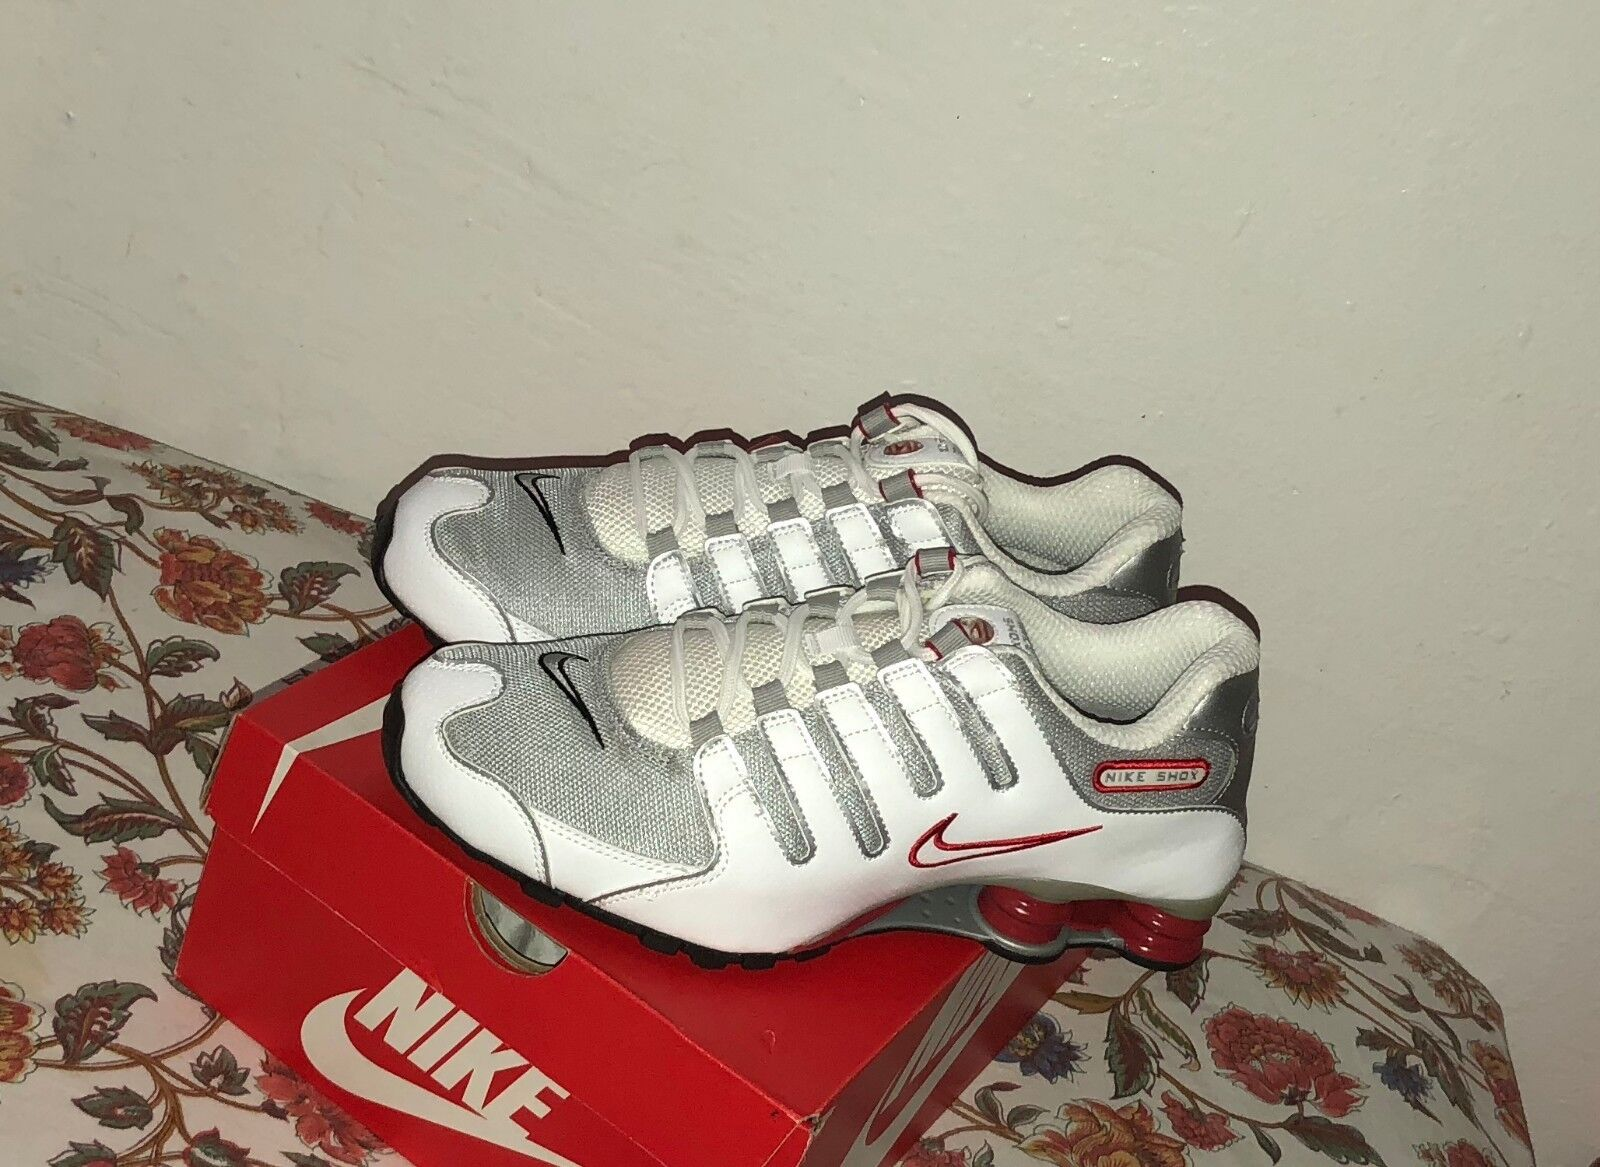 Nike Shox NZ Running shoes White Red Platinum Silver Size 9 New